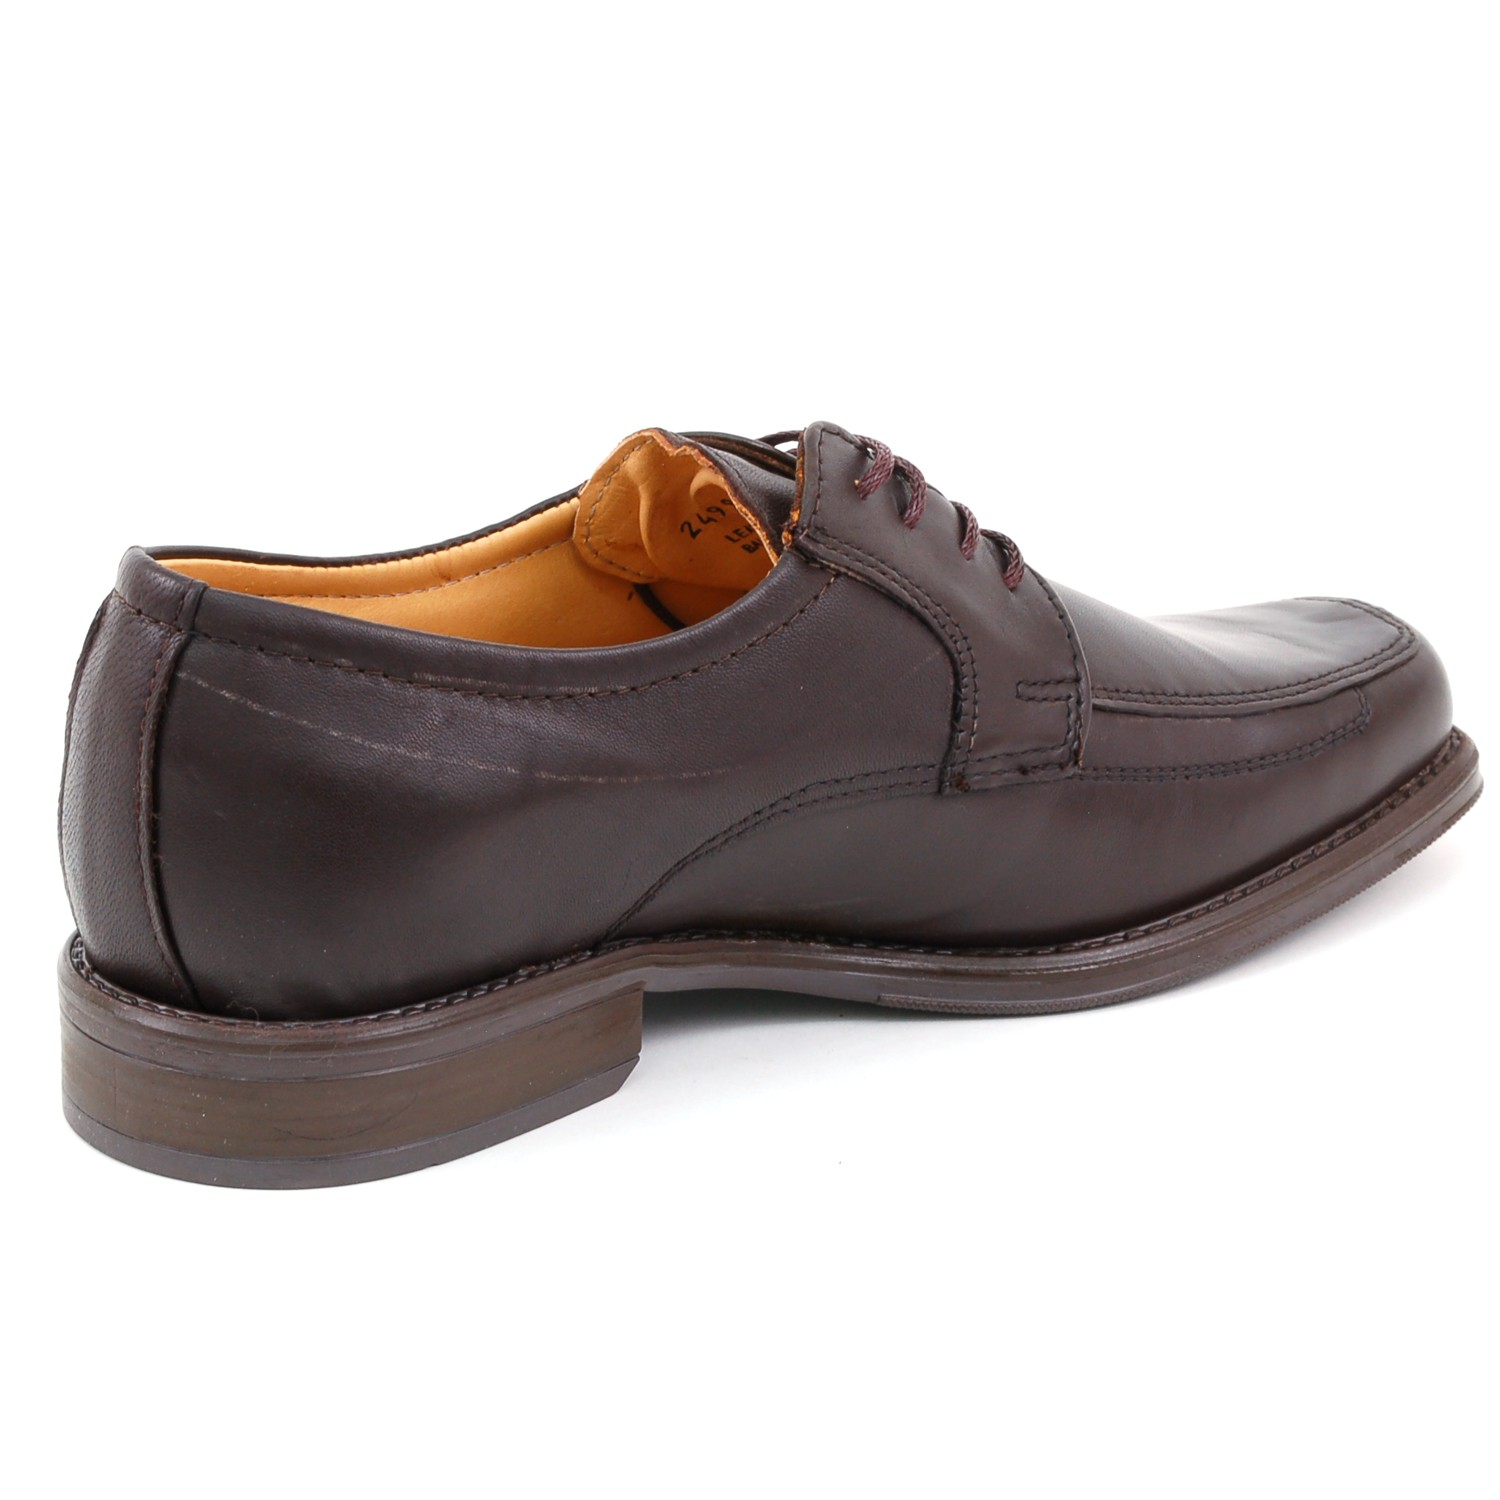 mens lace up oxfords dress shoes genuine leather moc toe